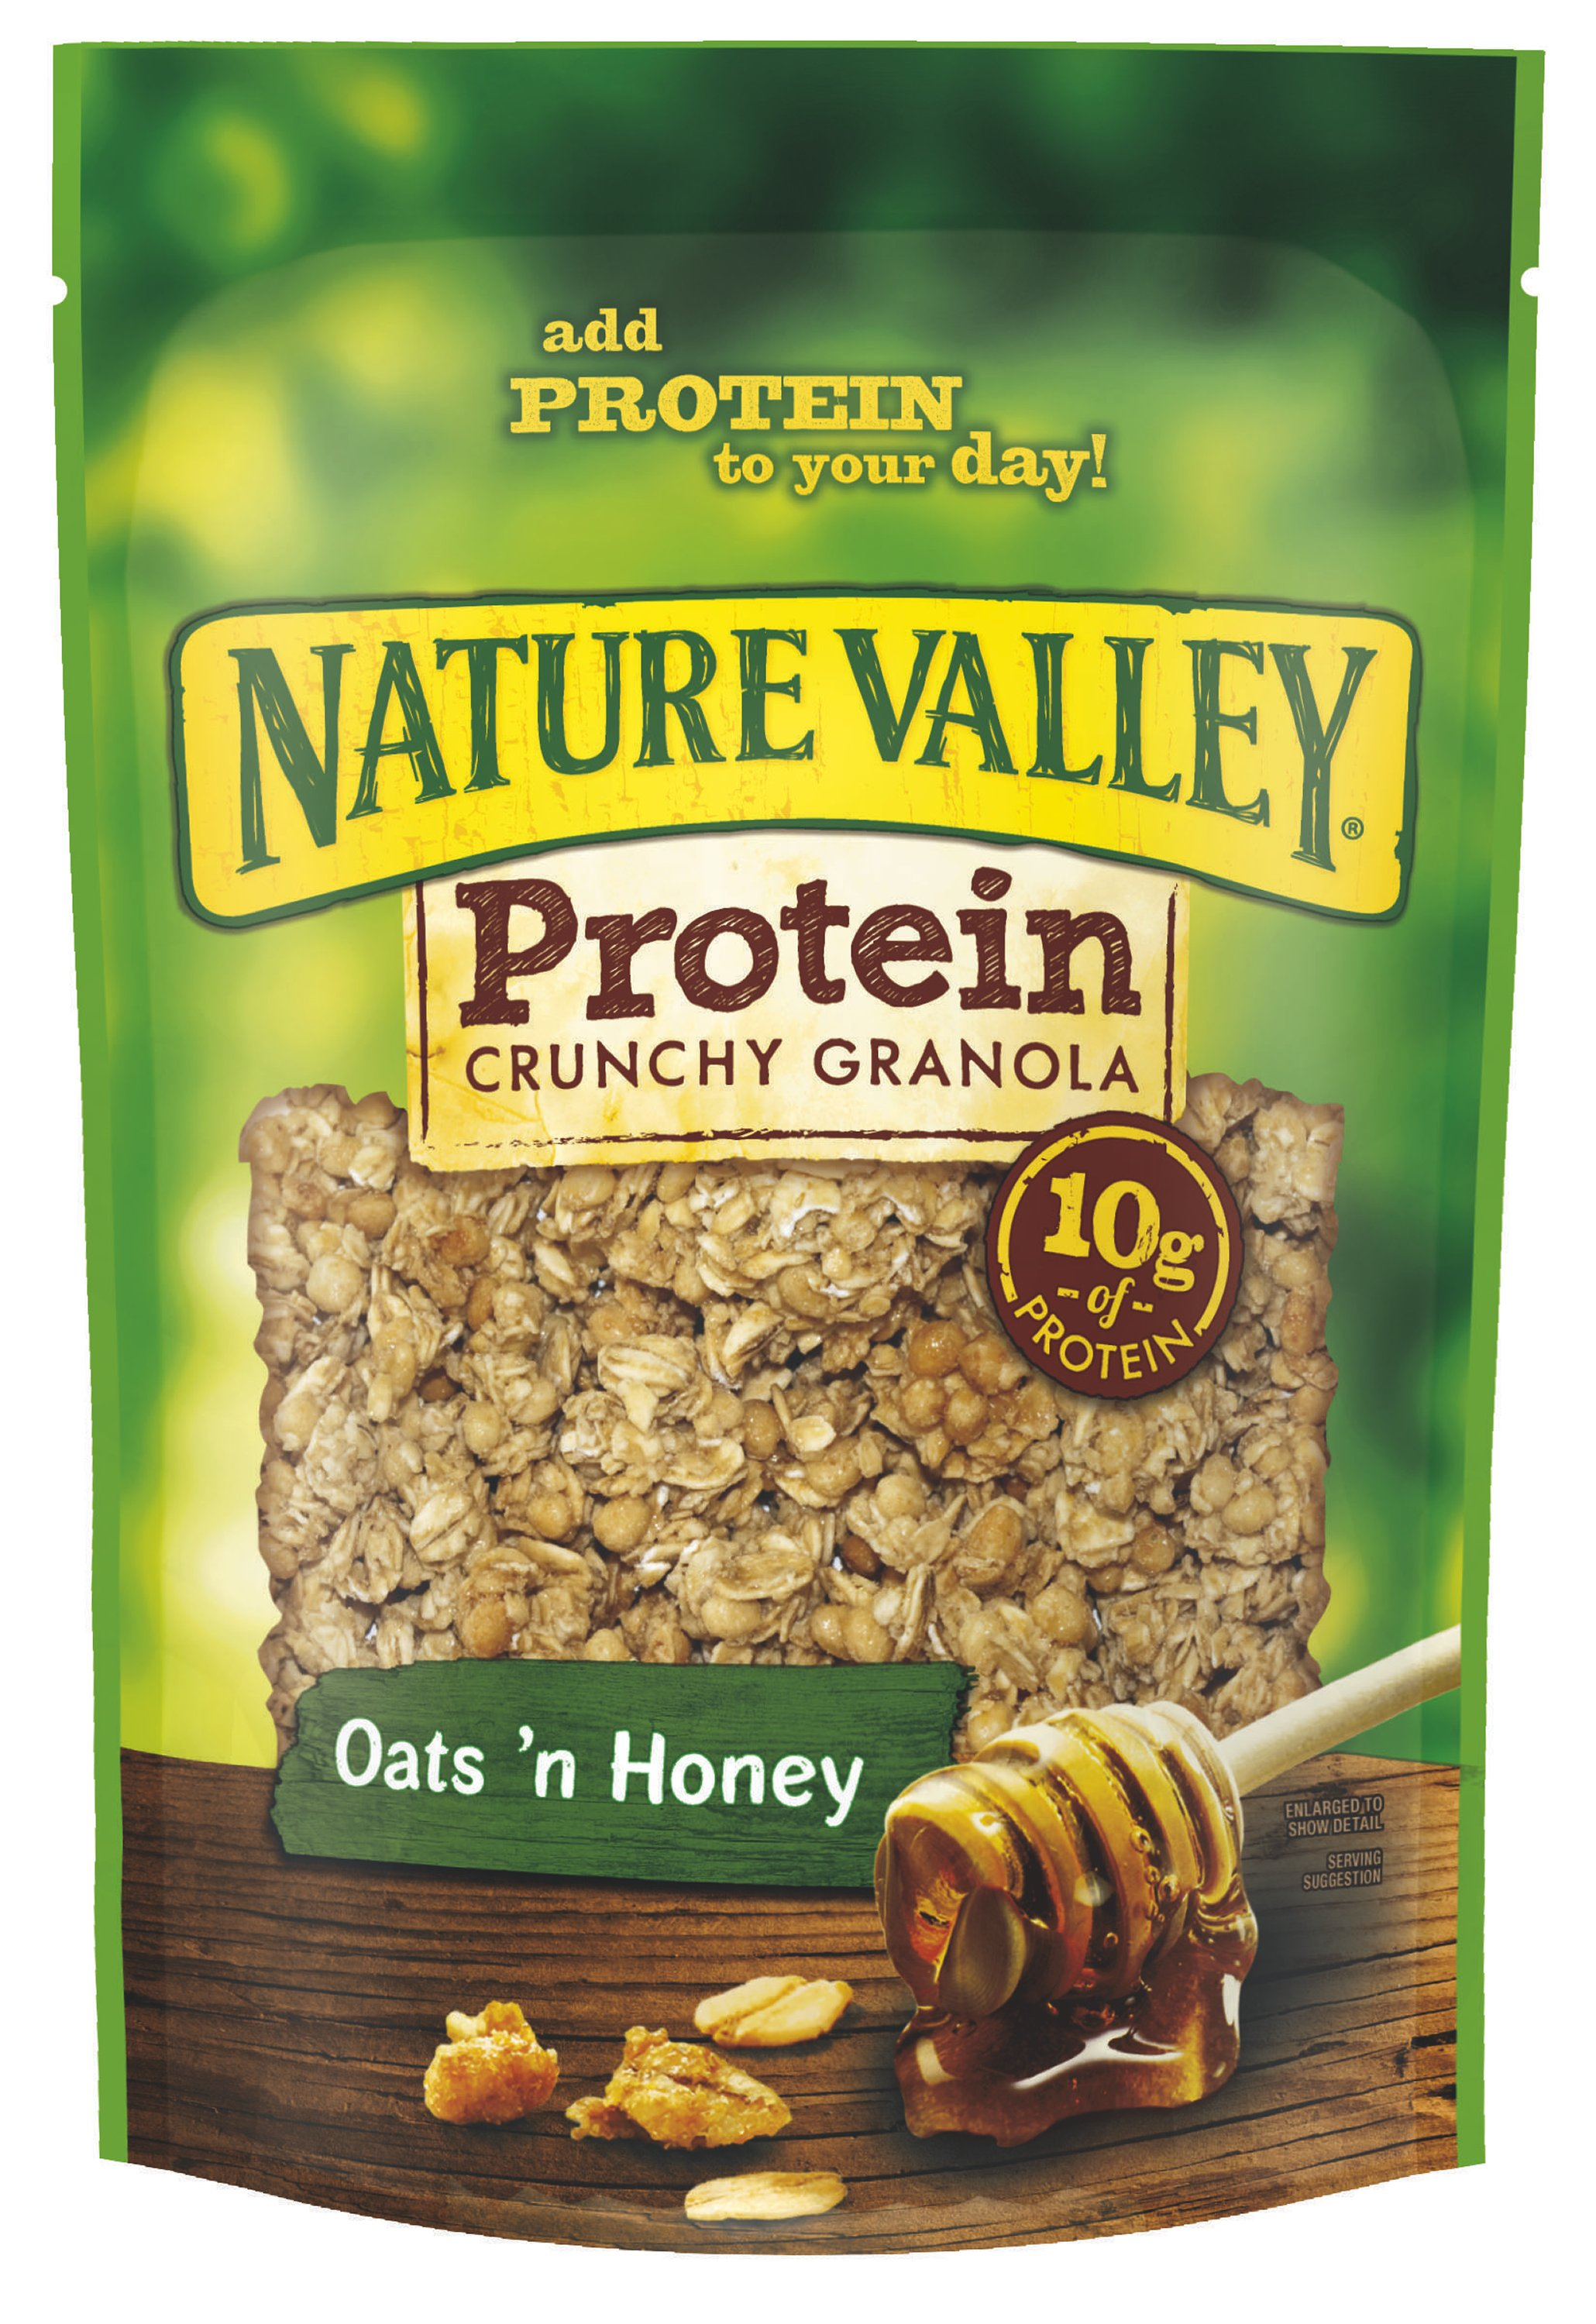 ... Protein Crunchy Granola and a Nature Valley mug! Breakfast is served